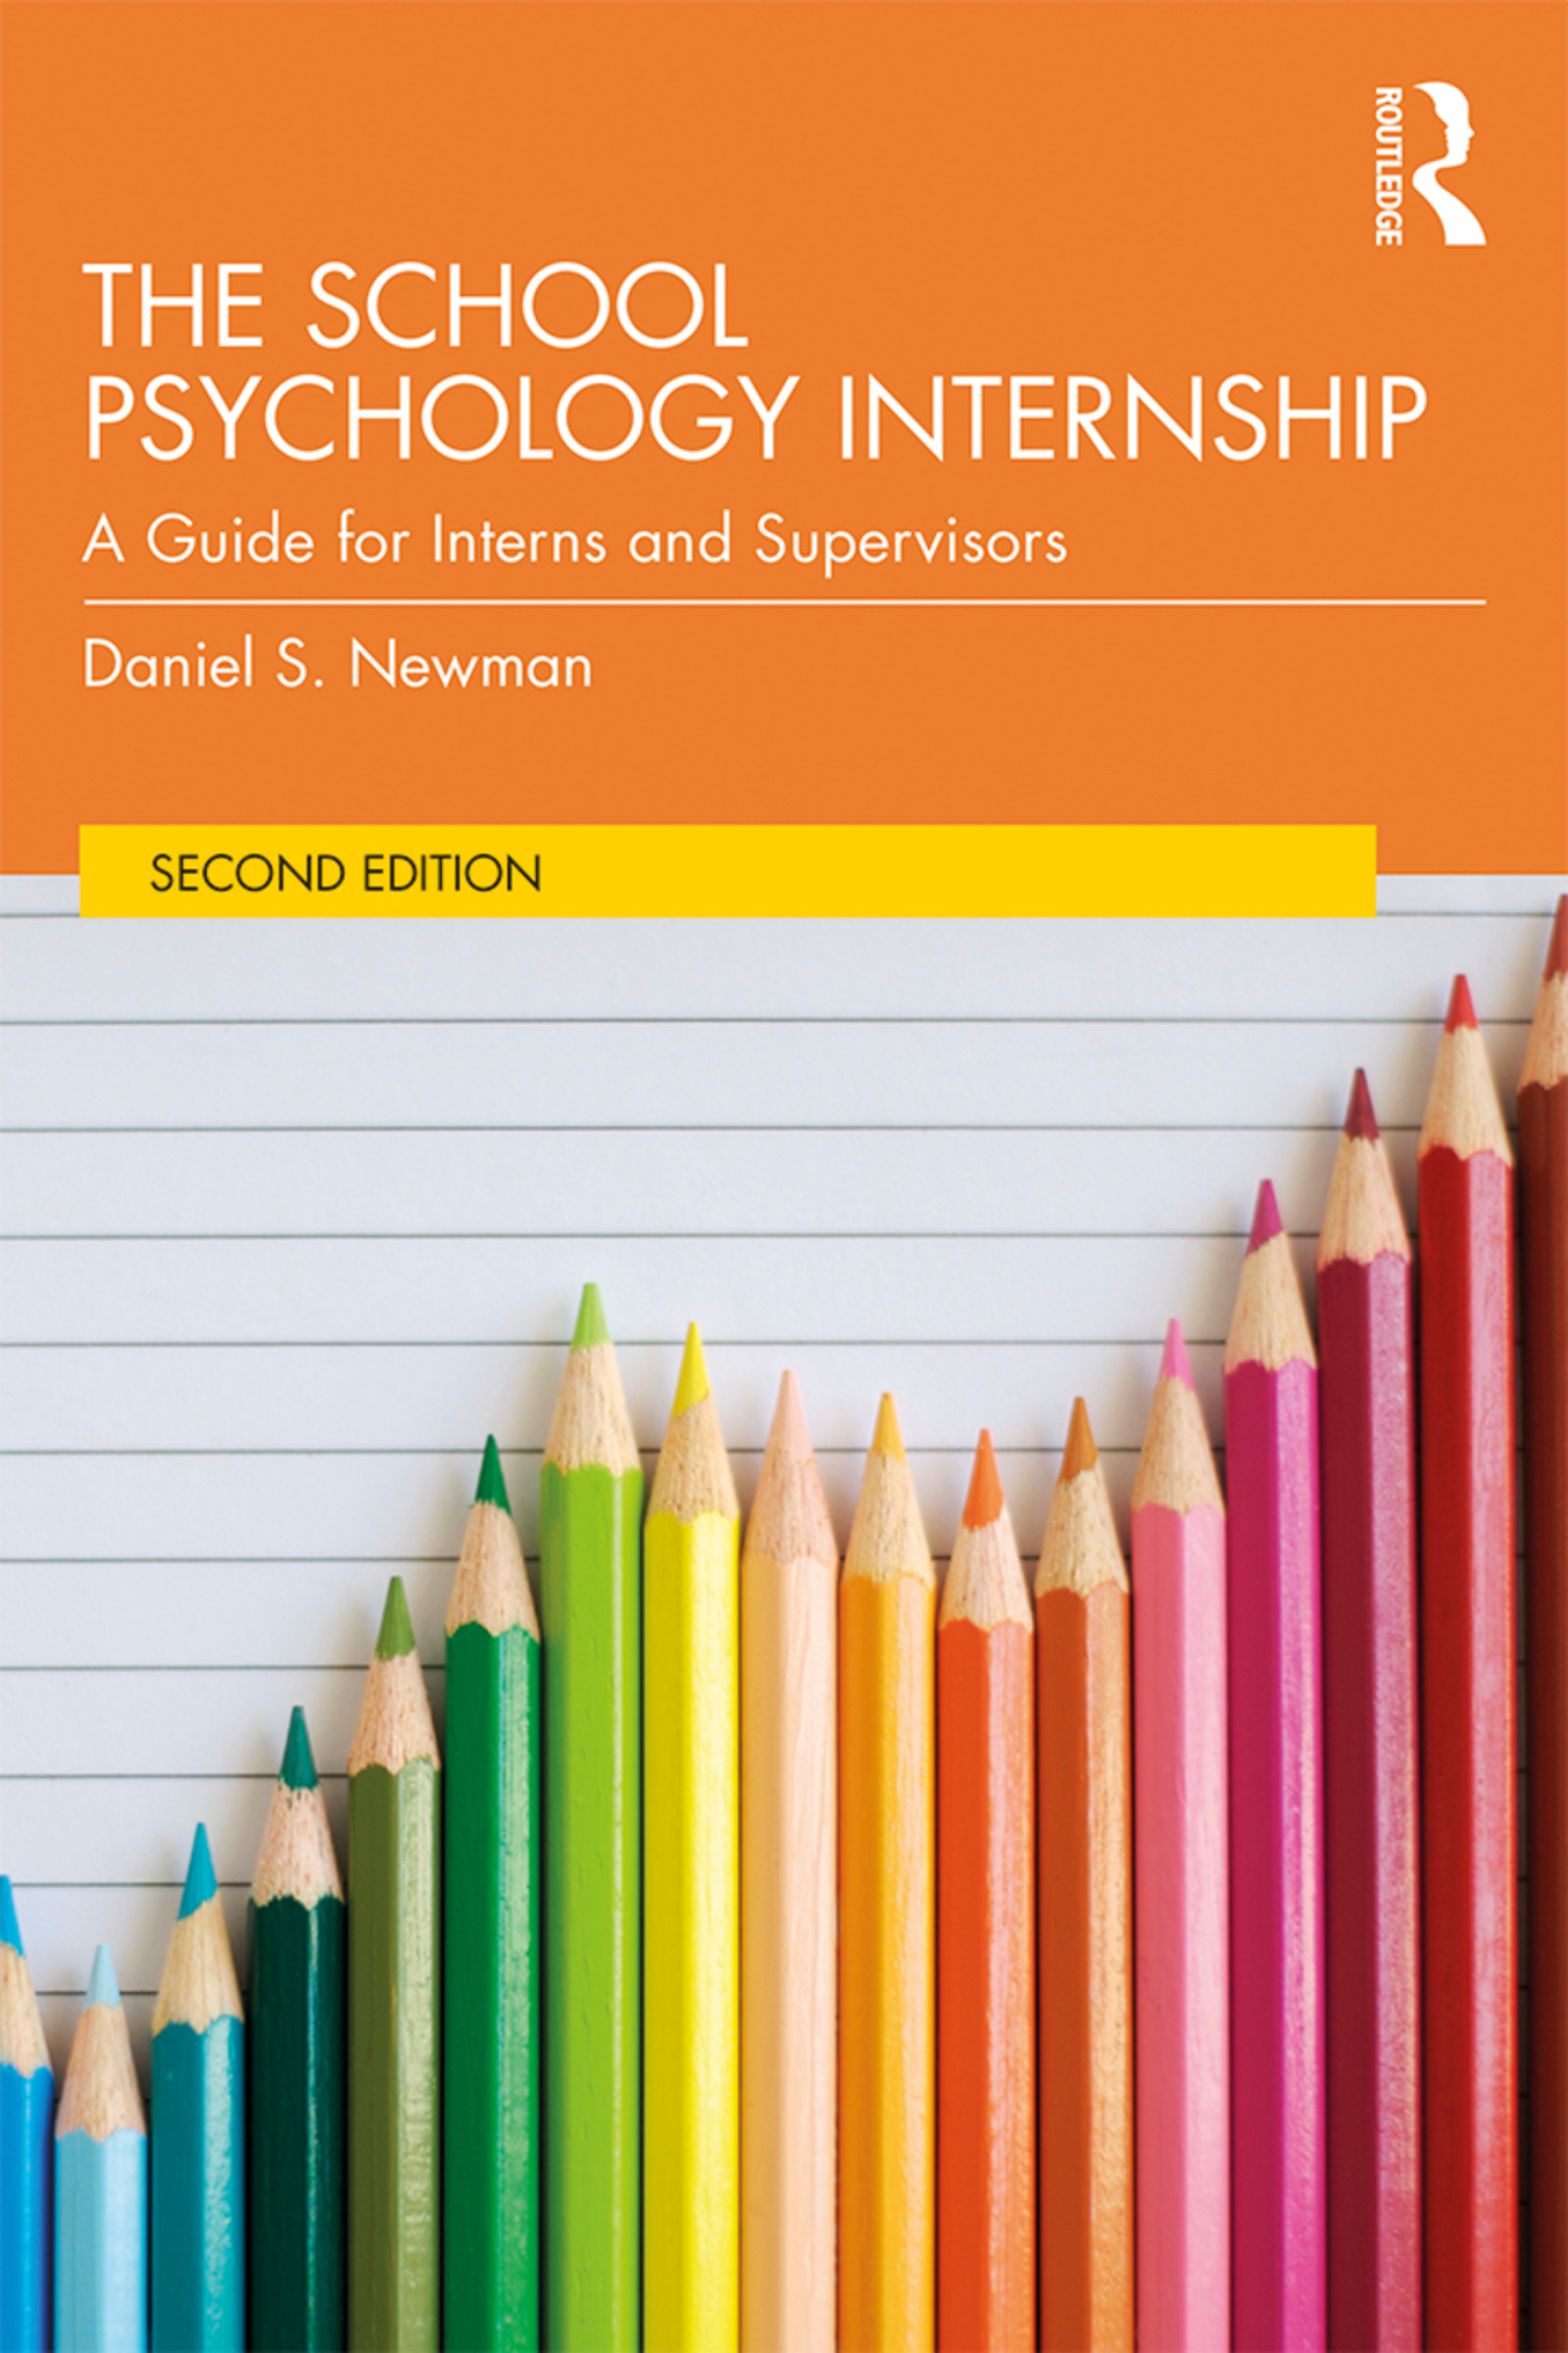 The School Psychology Internship: A Guide for Interns and